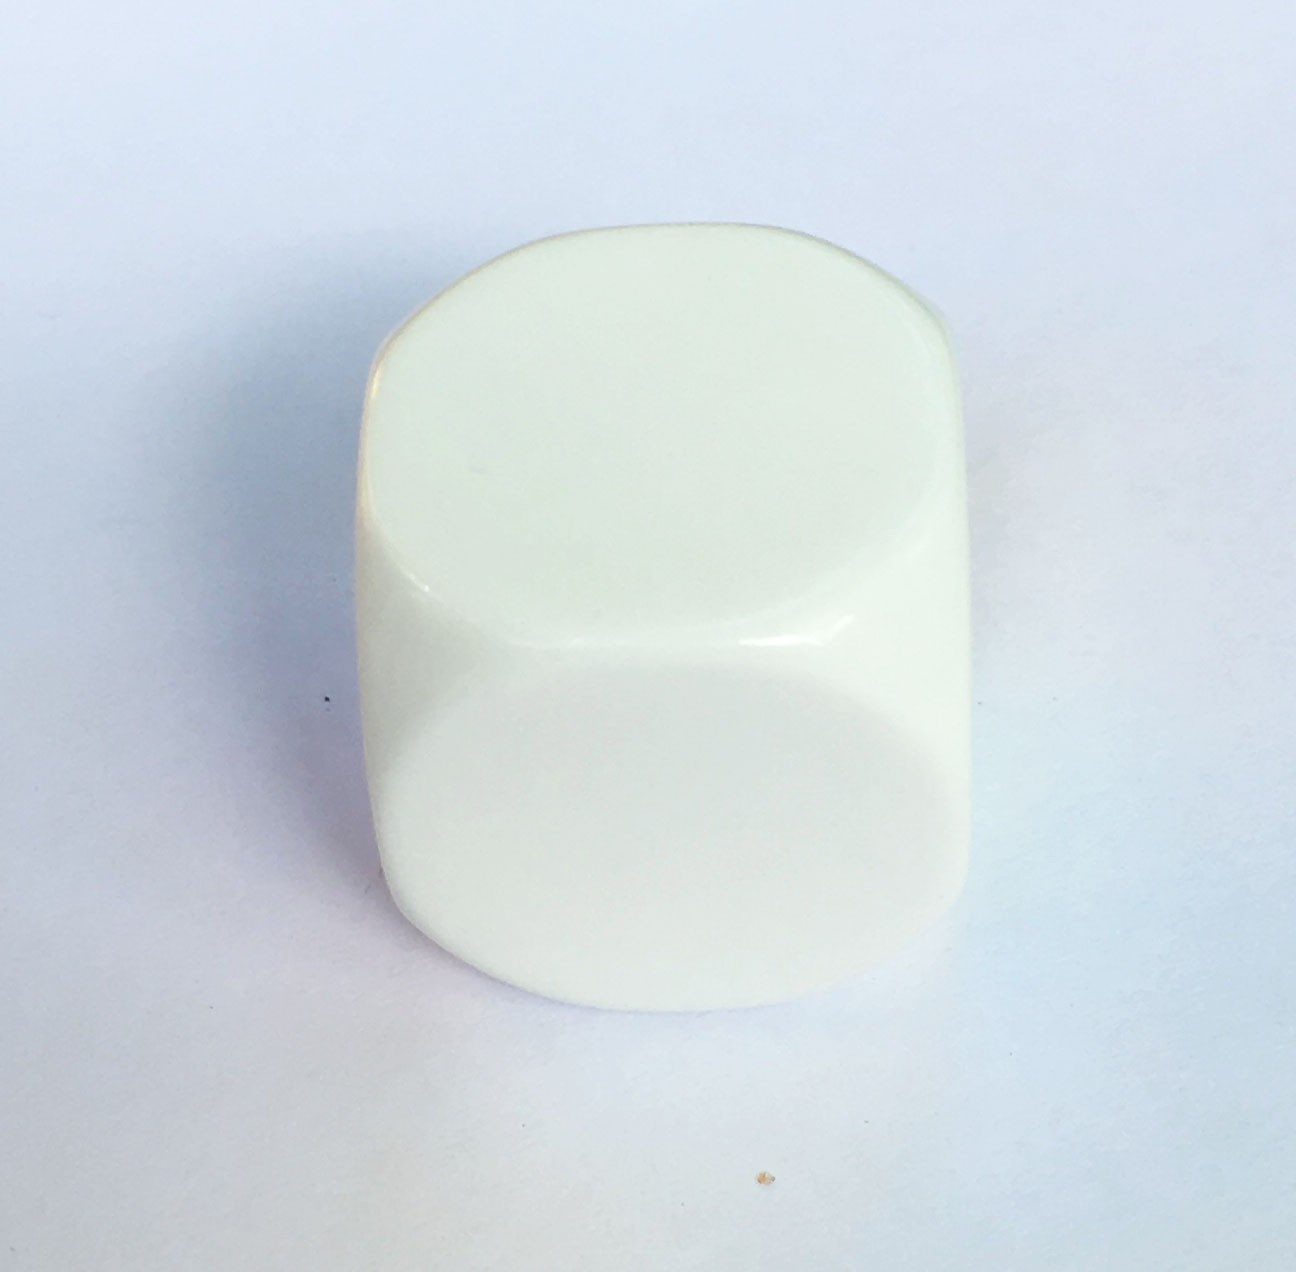 22mm Blank White Single